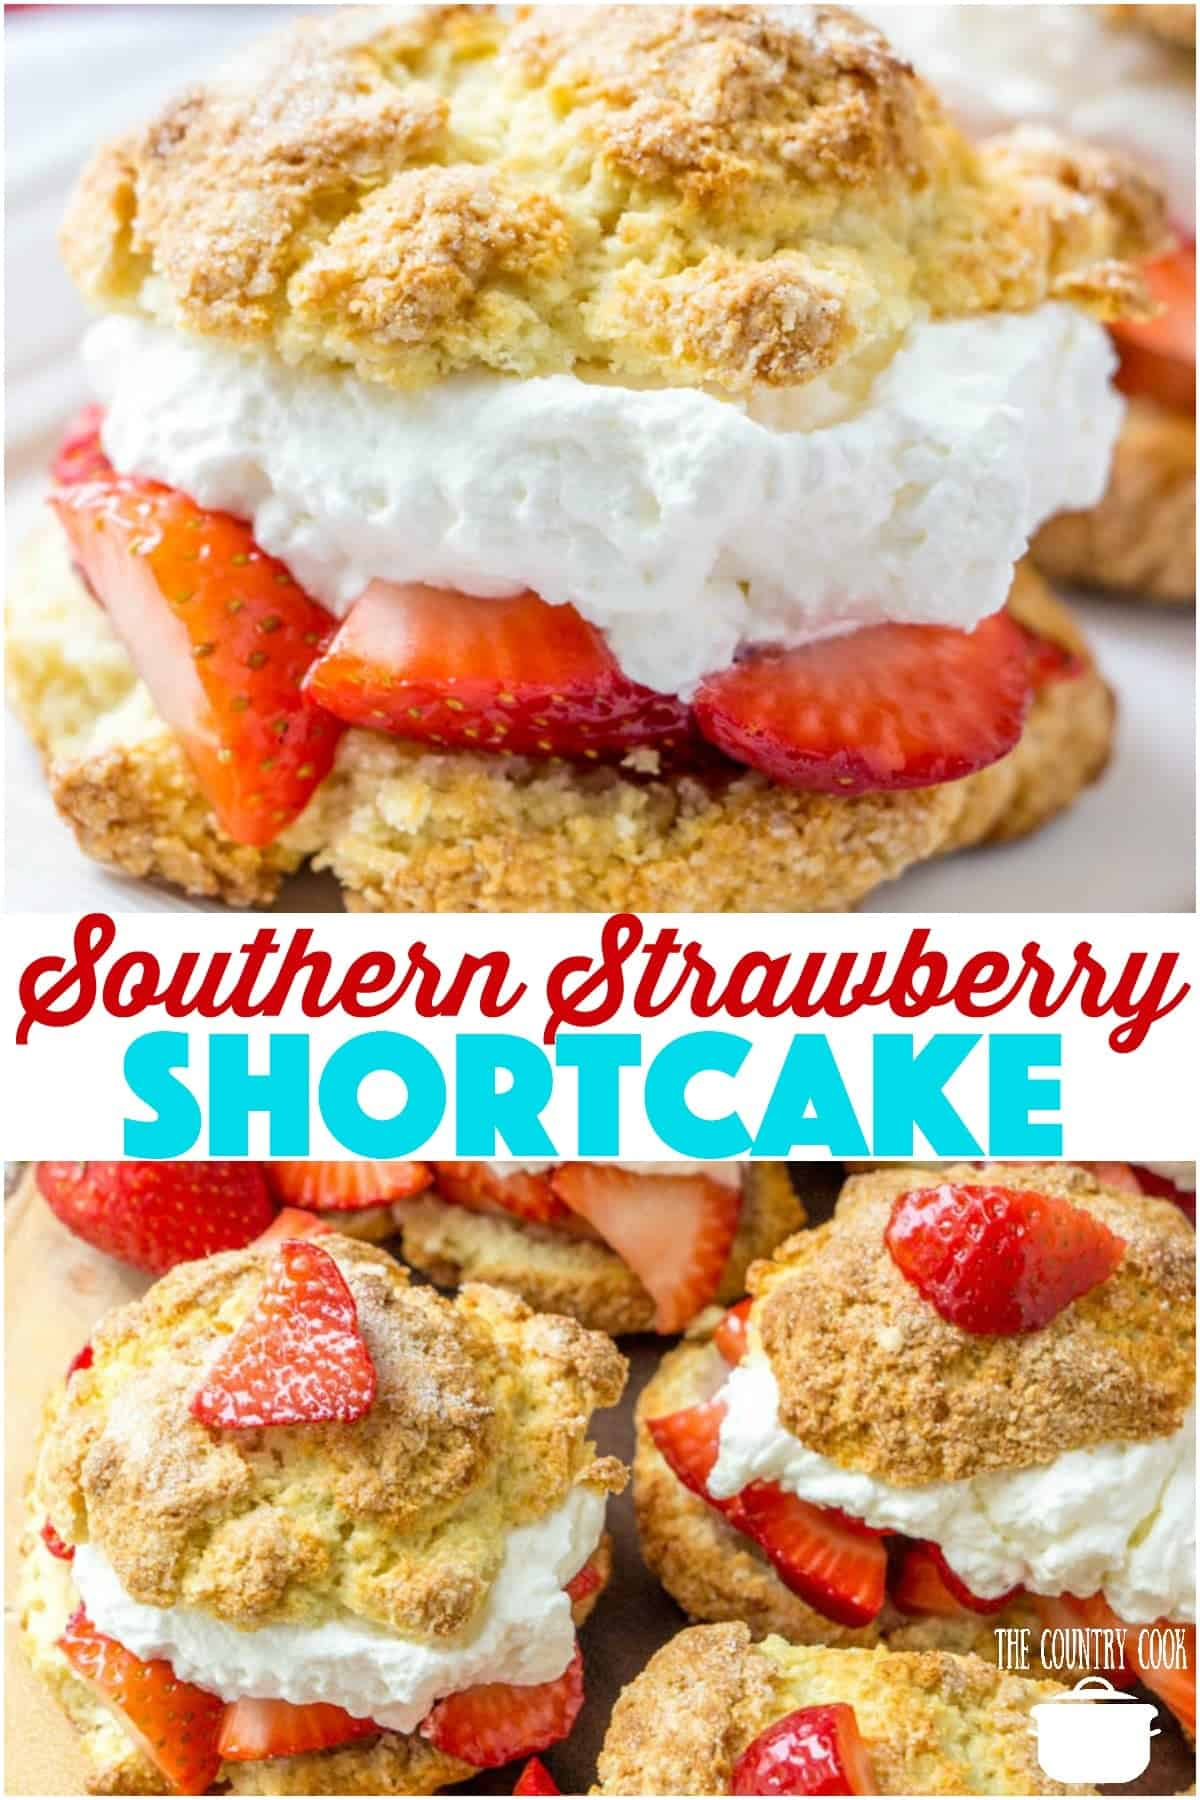 Homemade Southern Strawberry Shortcake recipe from The Country Cook #shortcake #dessert #desserts #strawberry #homemade #whippedcream #easy #ideas #best